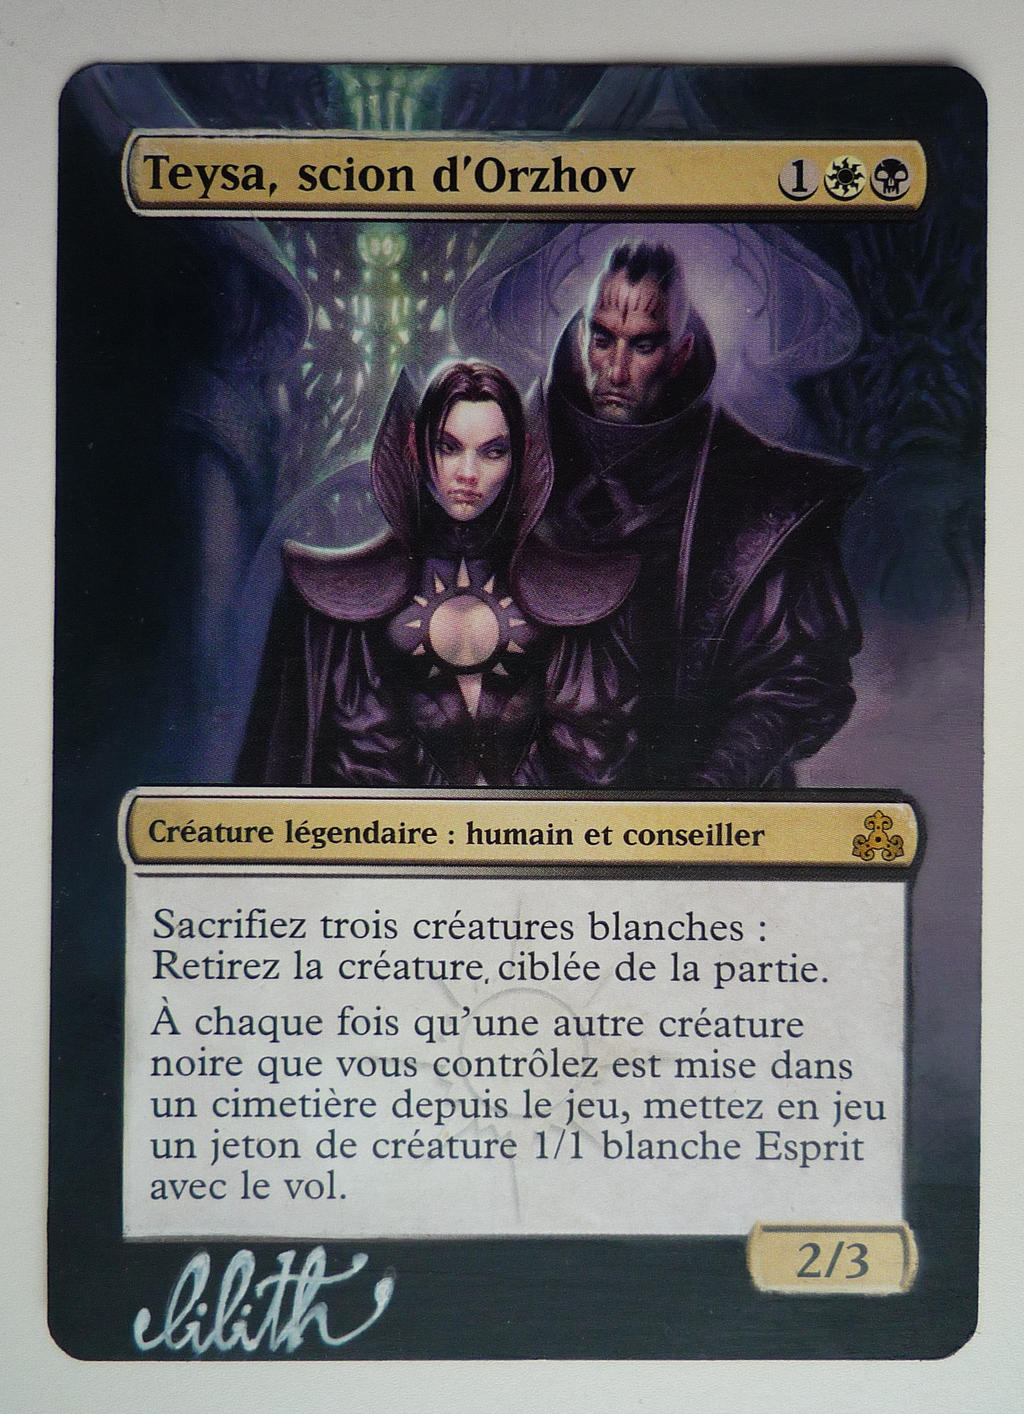 Teysa Orzhov Scion Mtg Card Alter By Lilithmj On Deviantart Test your knowledge on this gaming quiz and compare your score to others. teysa orzhov scion mtg card alter by